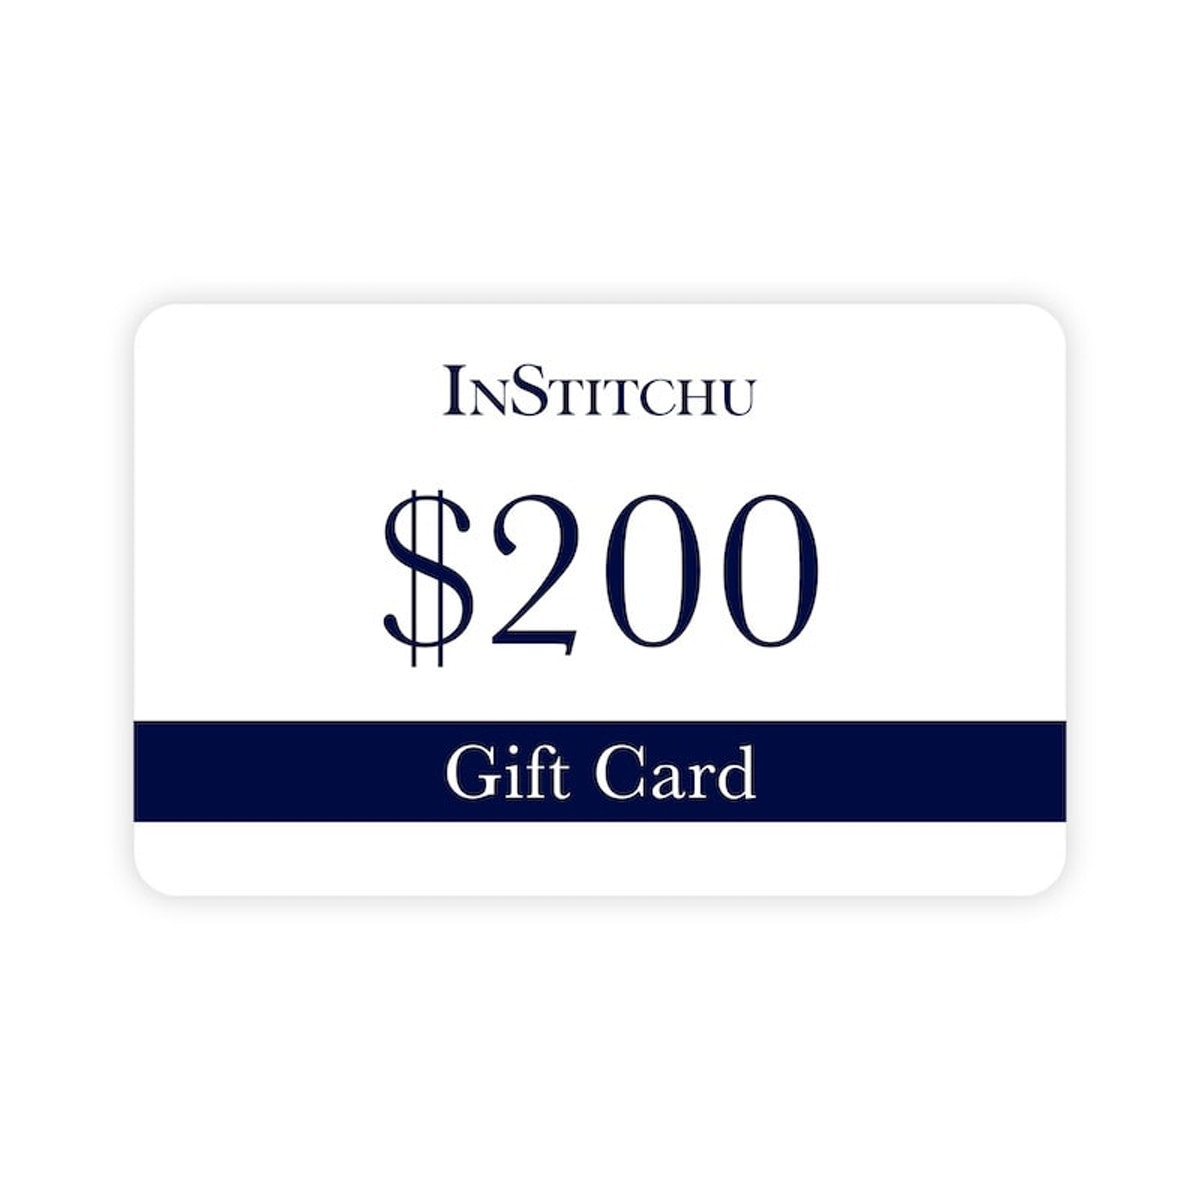 InStitchu Physical Gift Card $200